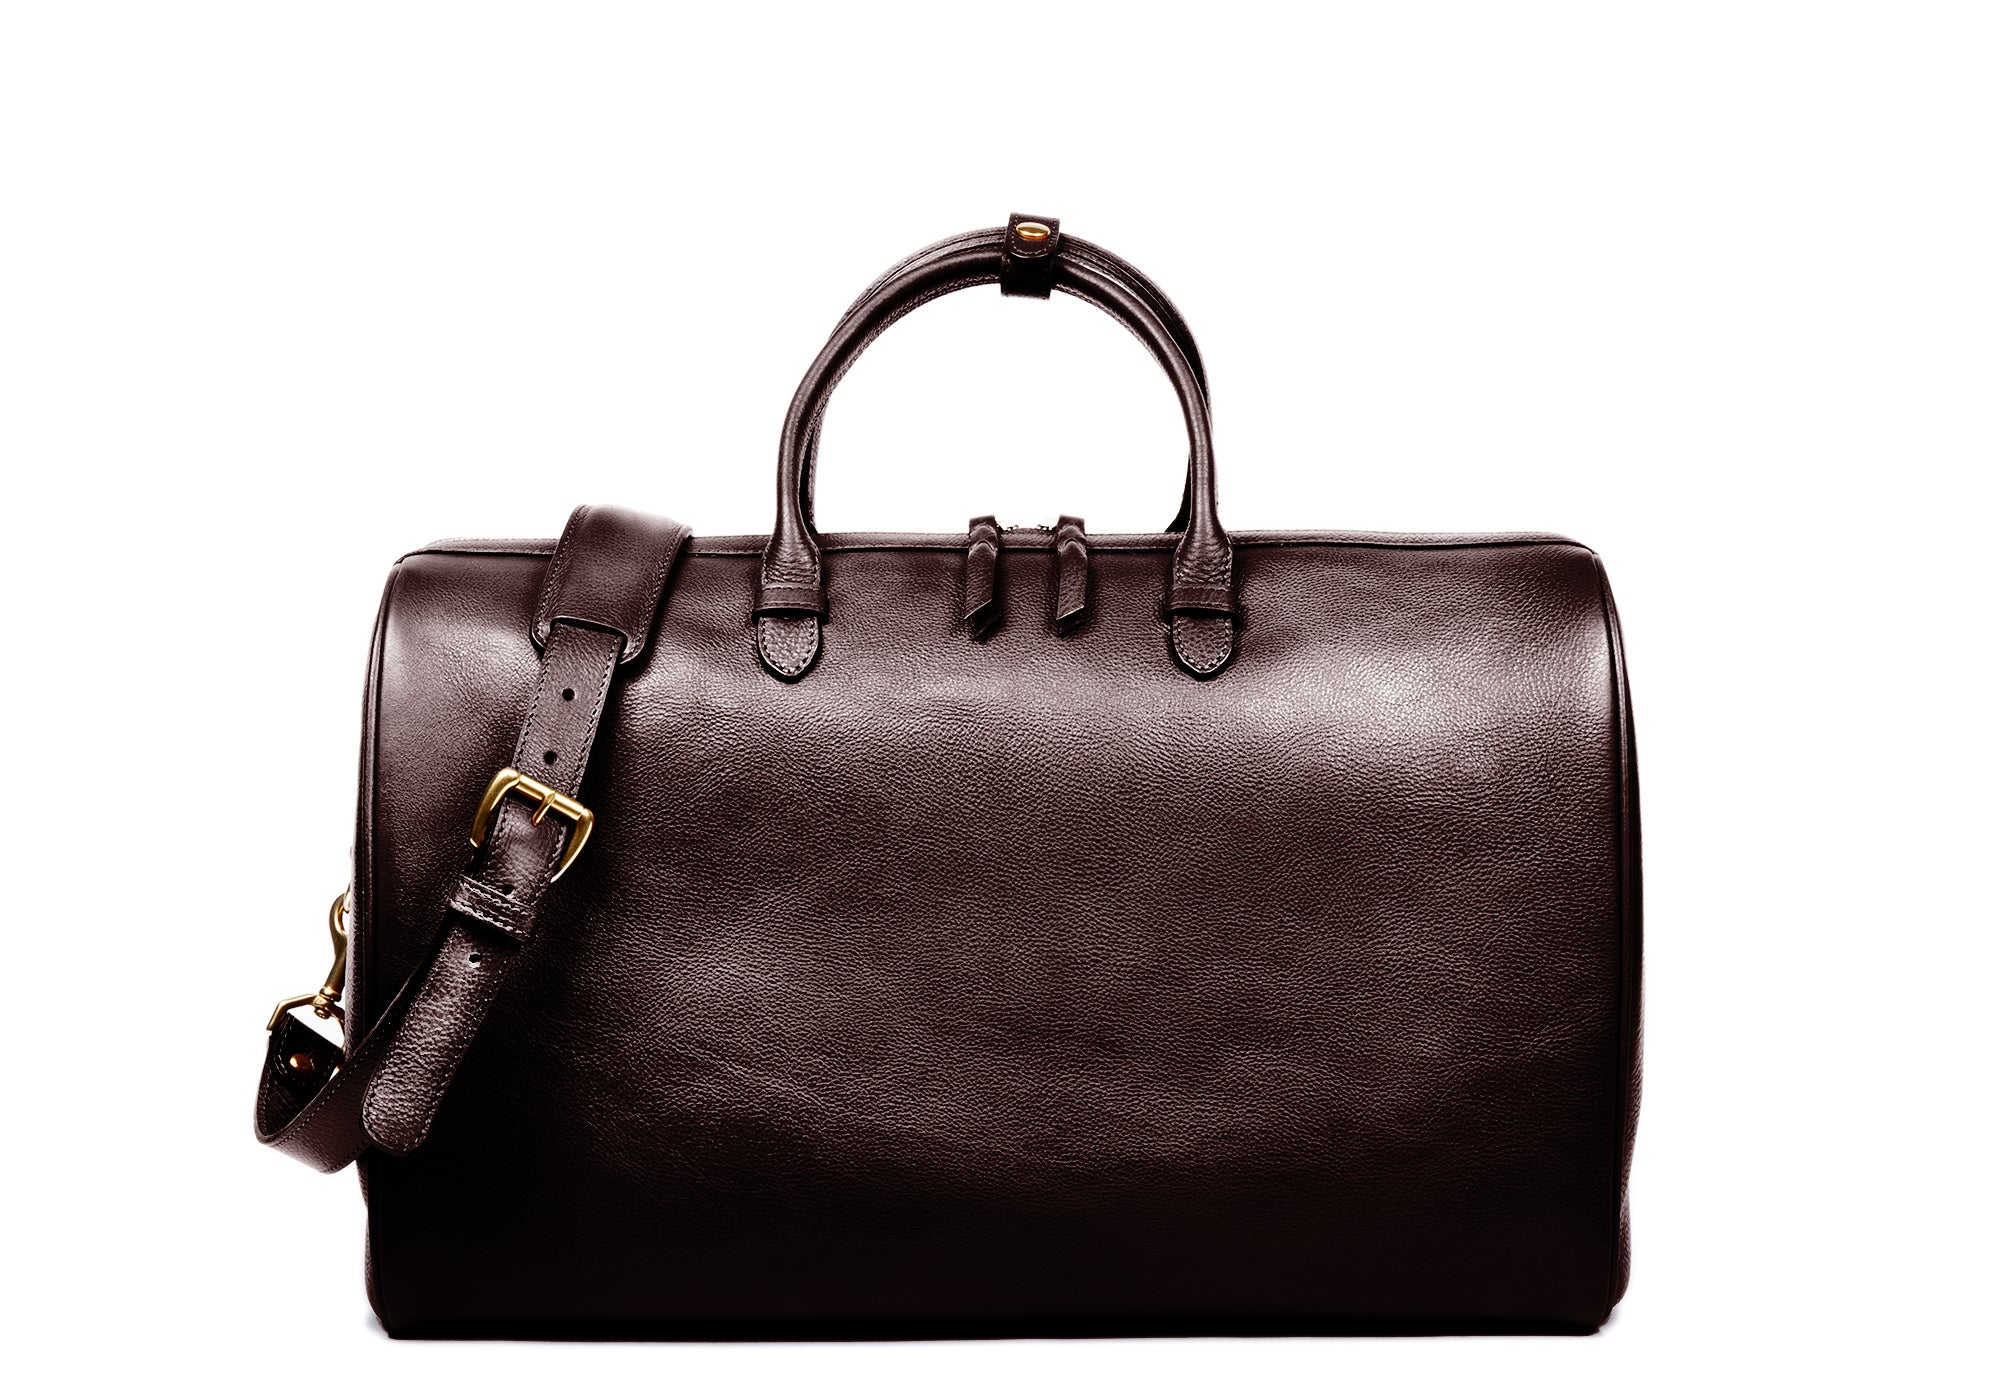 No. 10 Weekender Bag Chocolate|Front Leather View